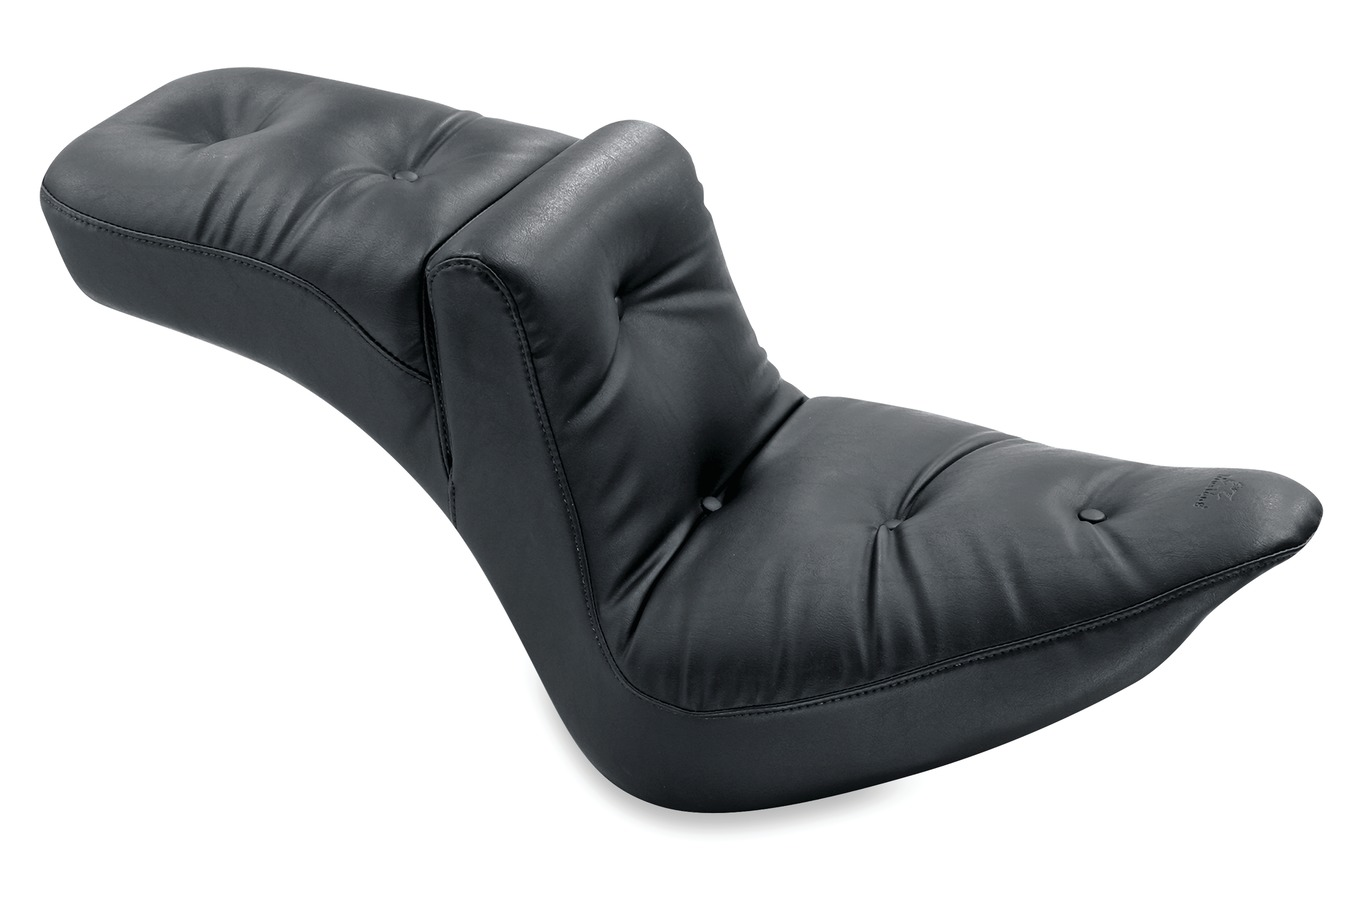 Duke One-Piece Seat, Original Regal, Black